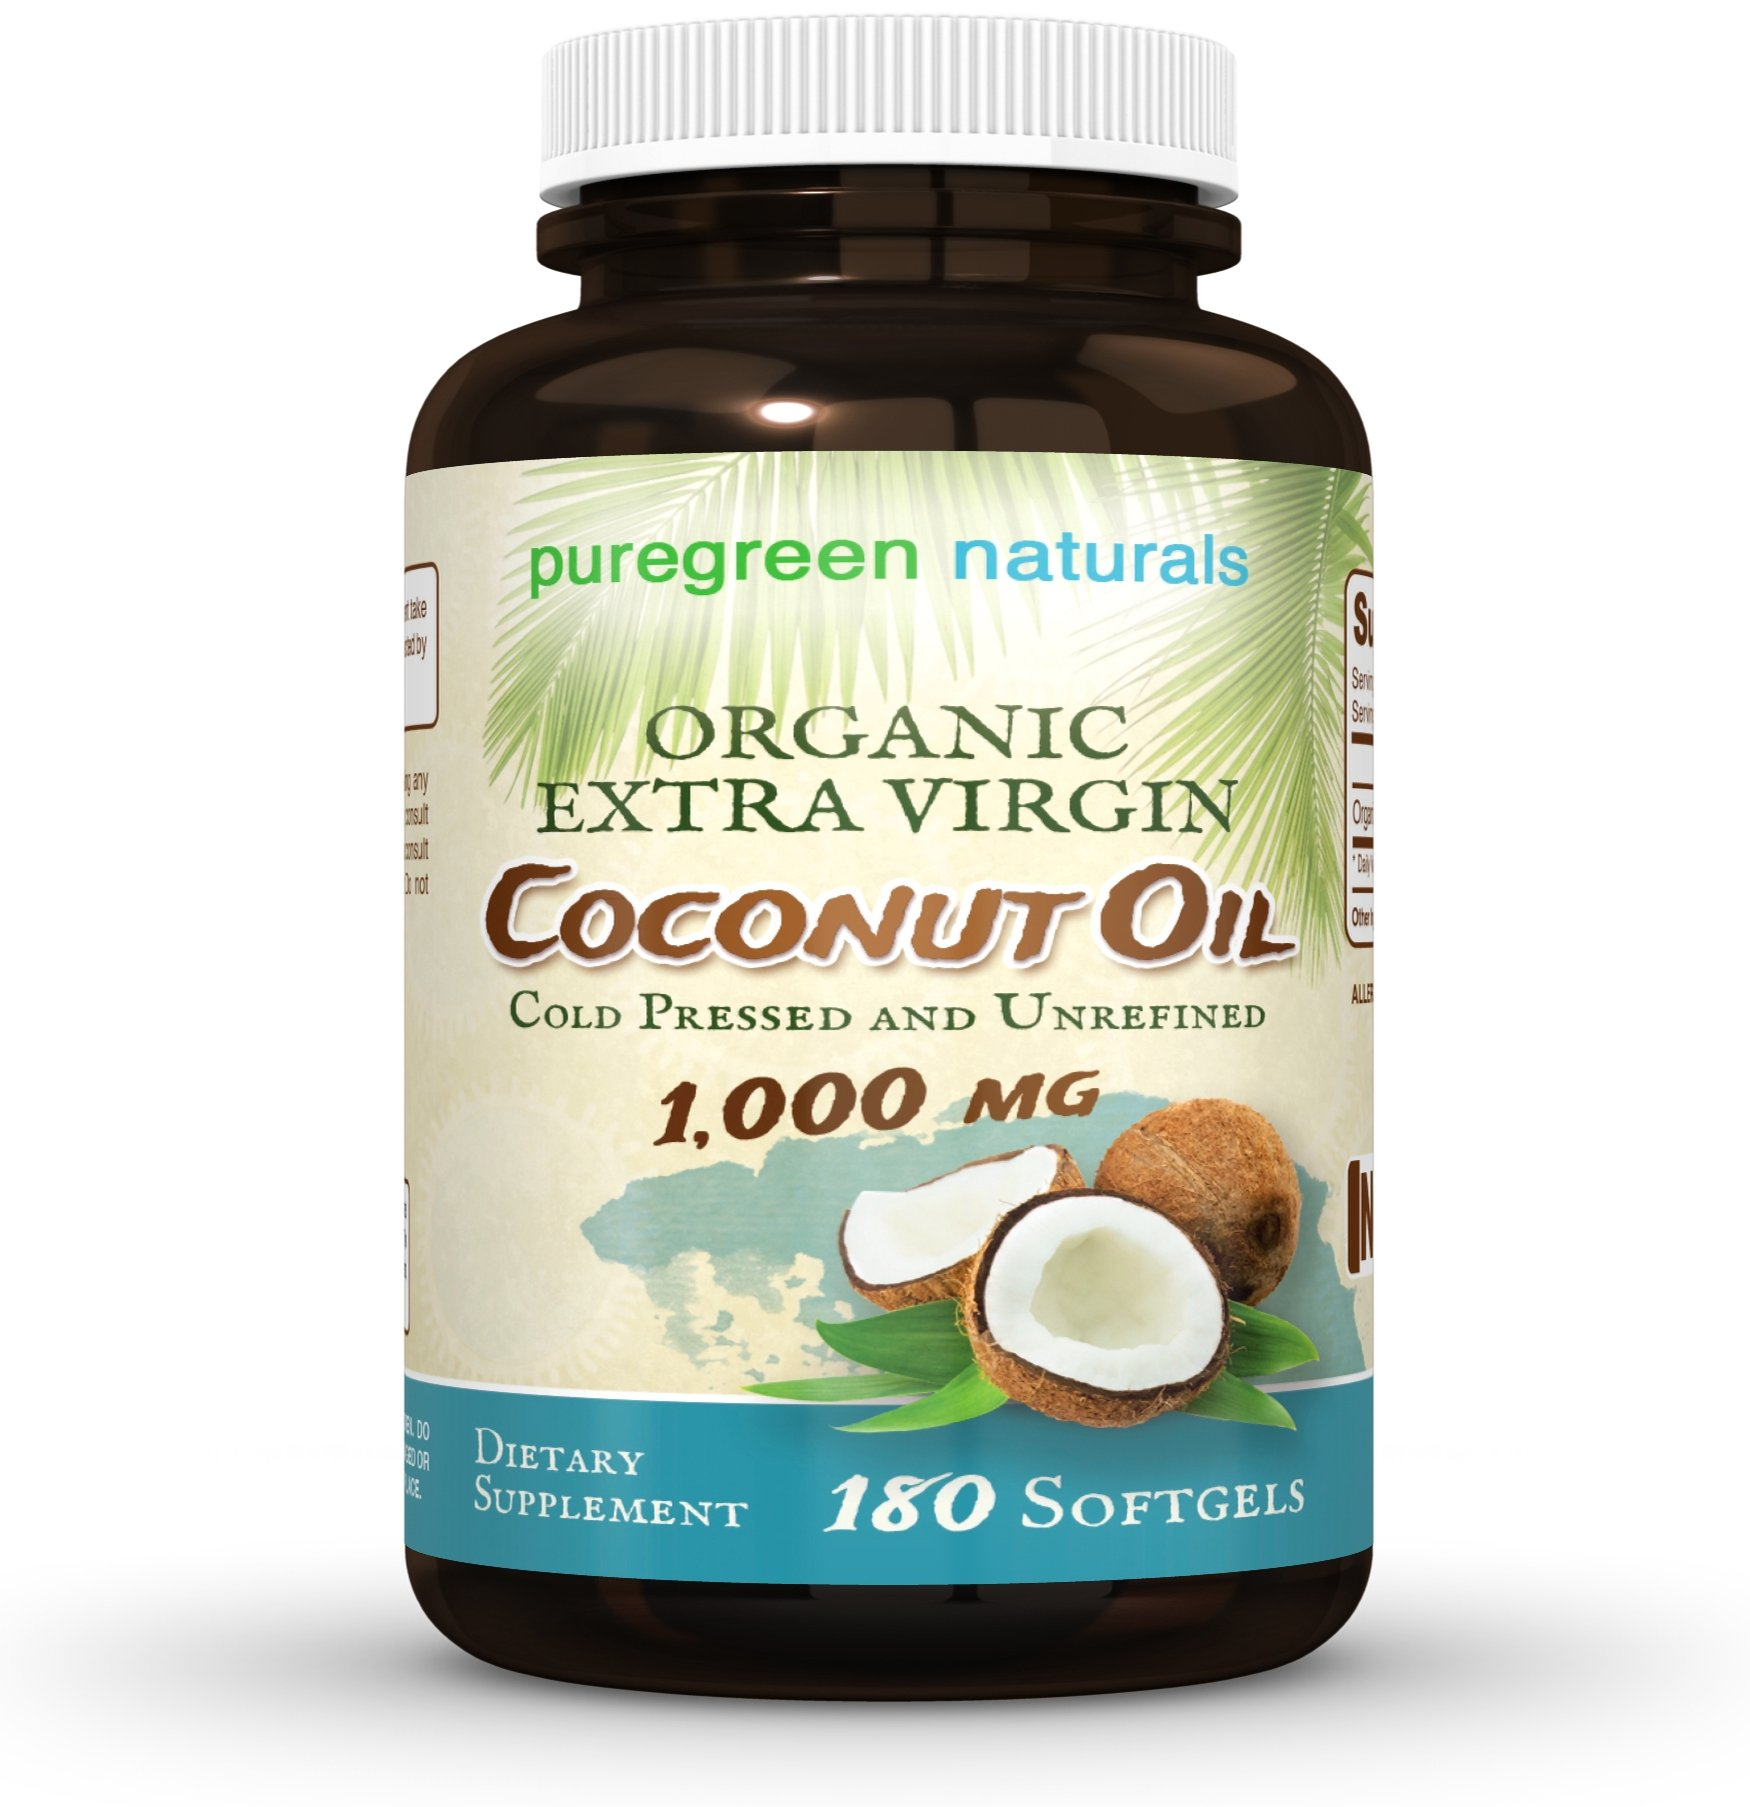 Coconut Oil Capsules - 1000 mg Organic Extra Virgin - 180 Softgels - Great Pills for Energy, Weight Management, Hair, and Skin